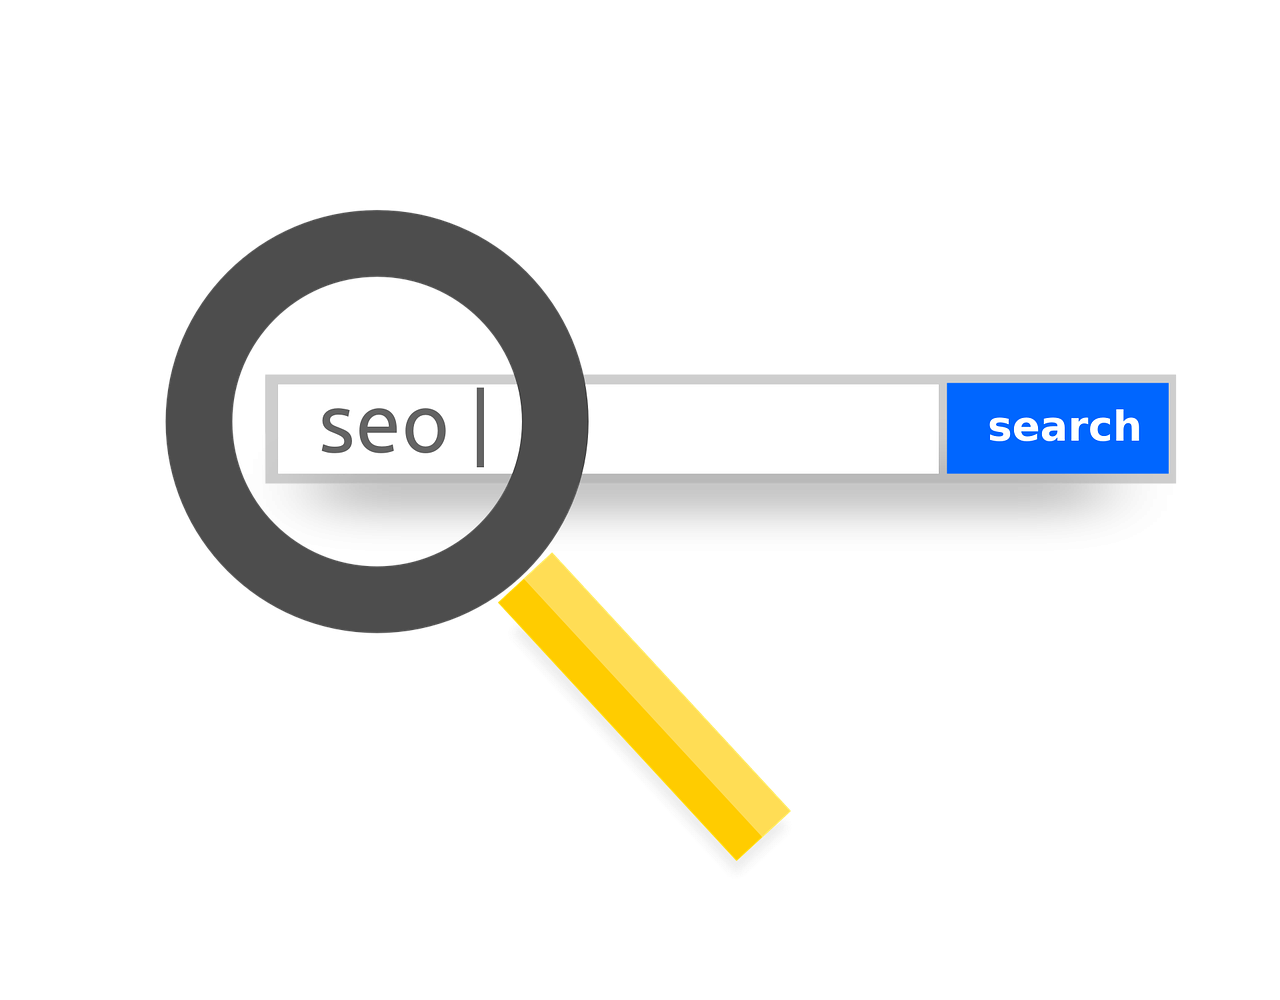 Useful Tactics for Driving SEO Traffic from search engines